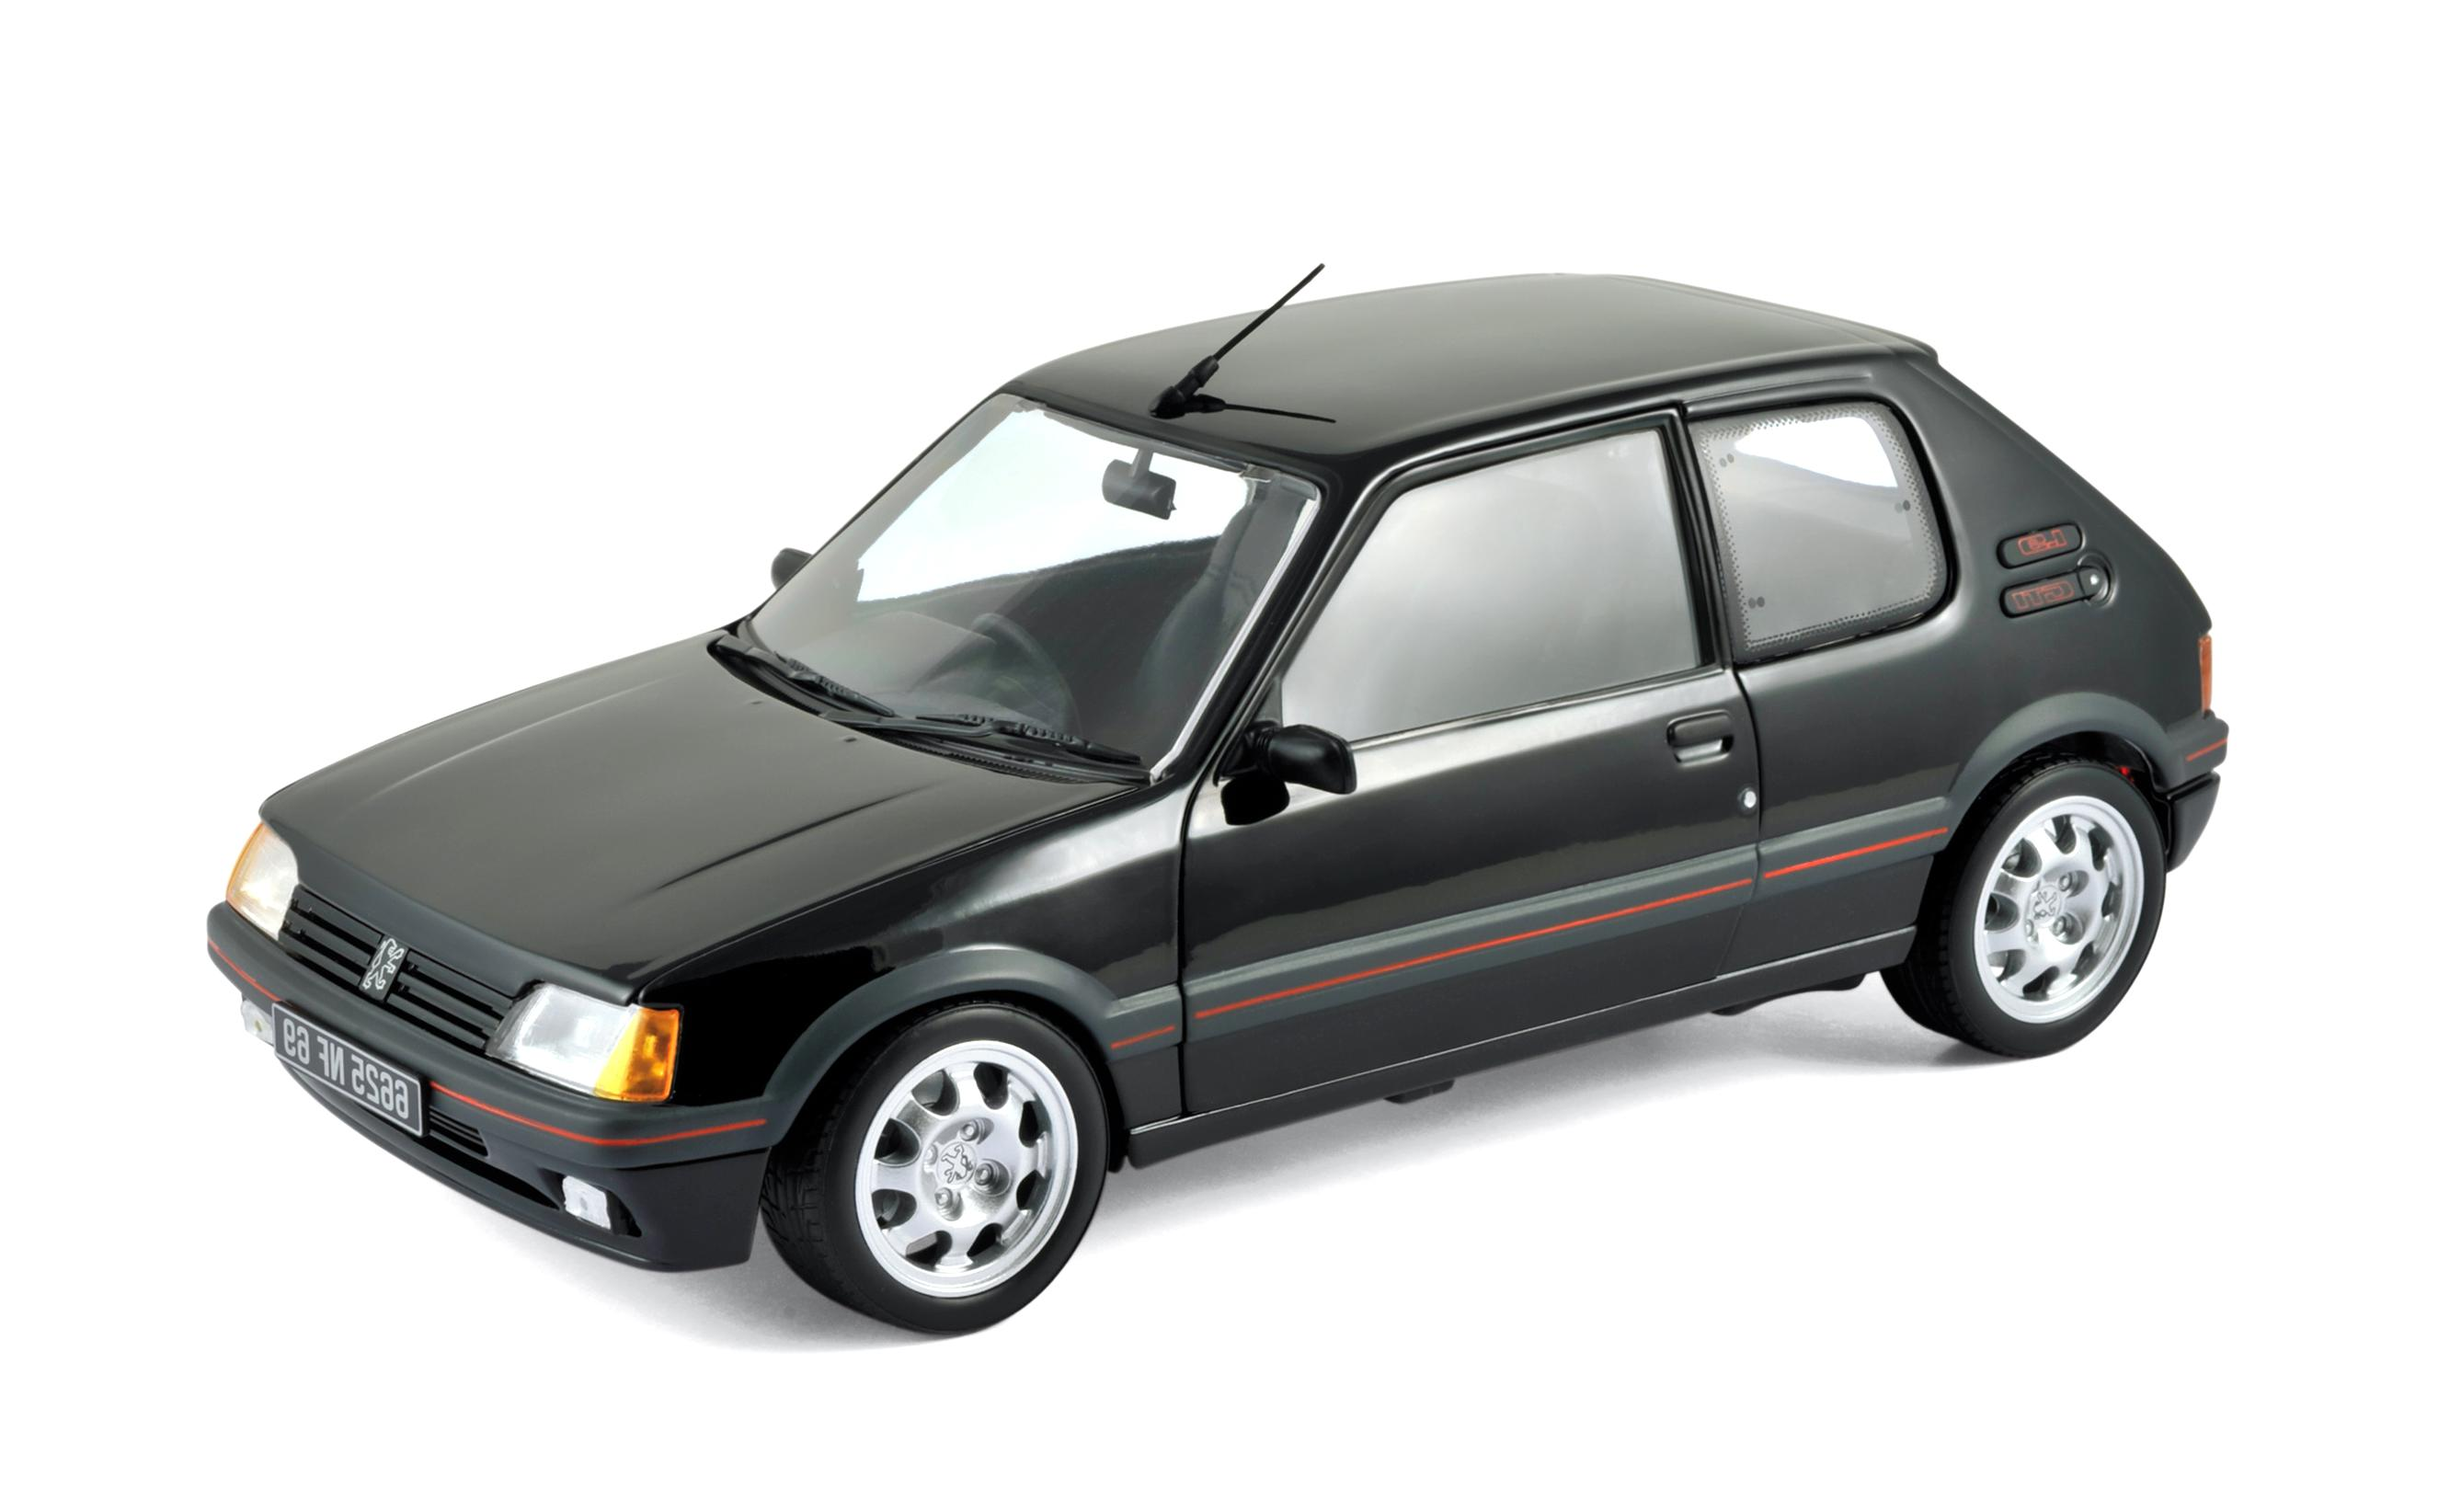 205 gti norev d'occasion